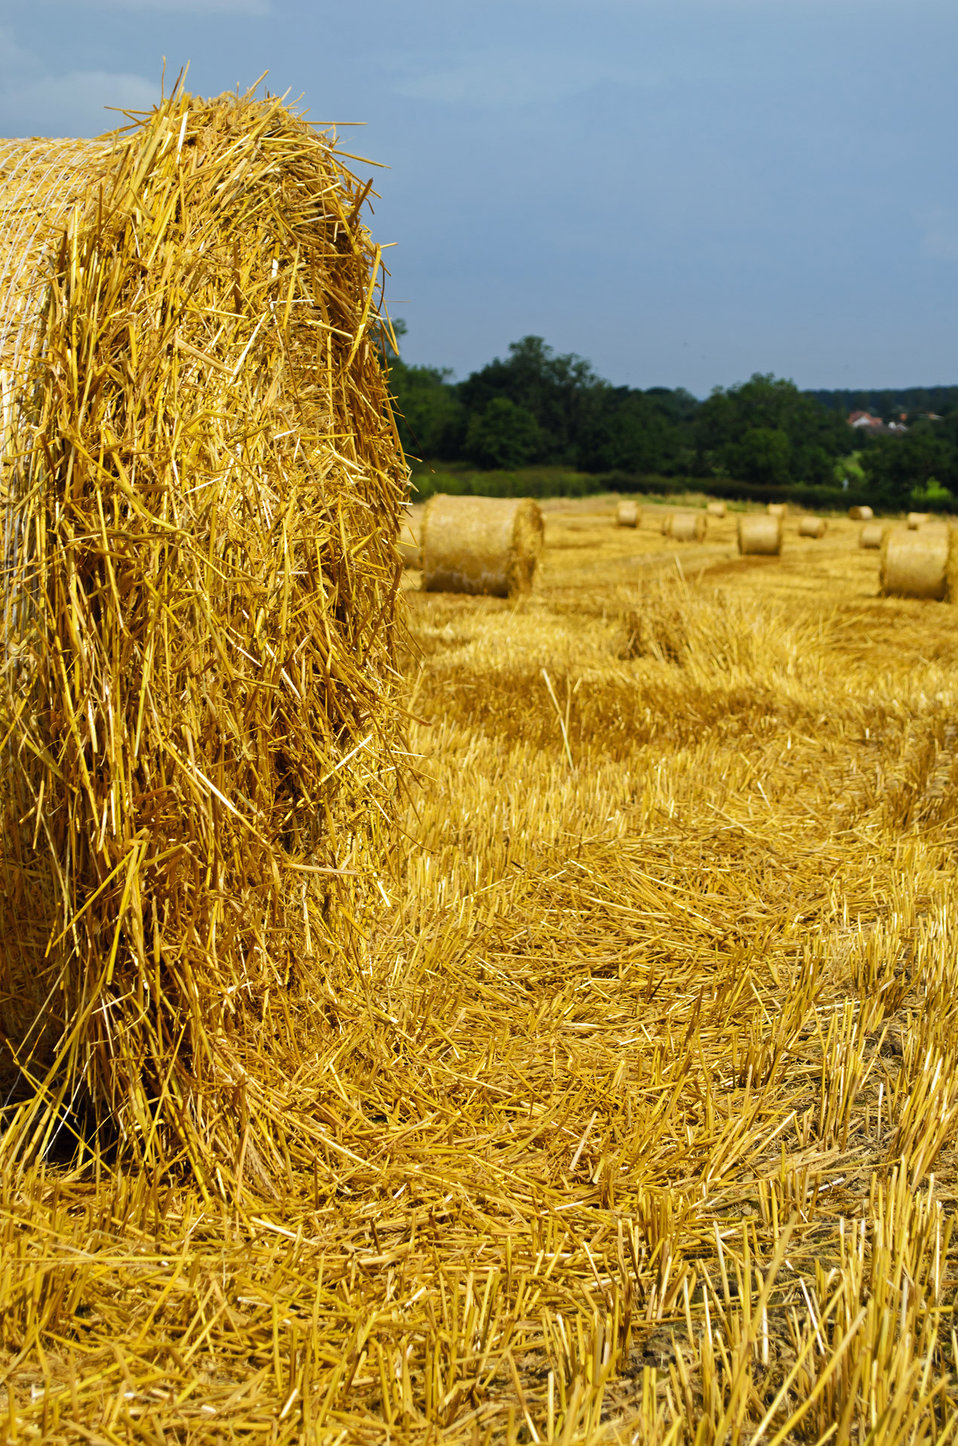 Harvested field with straw